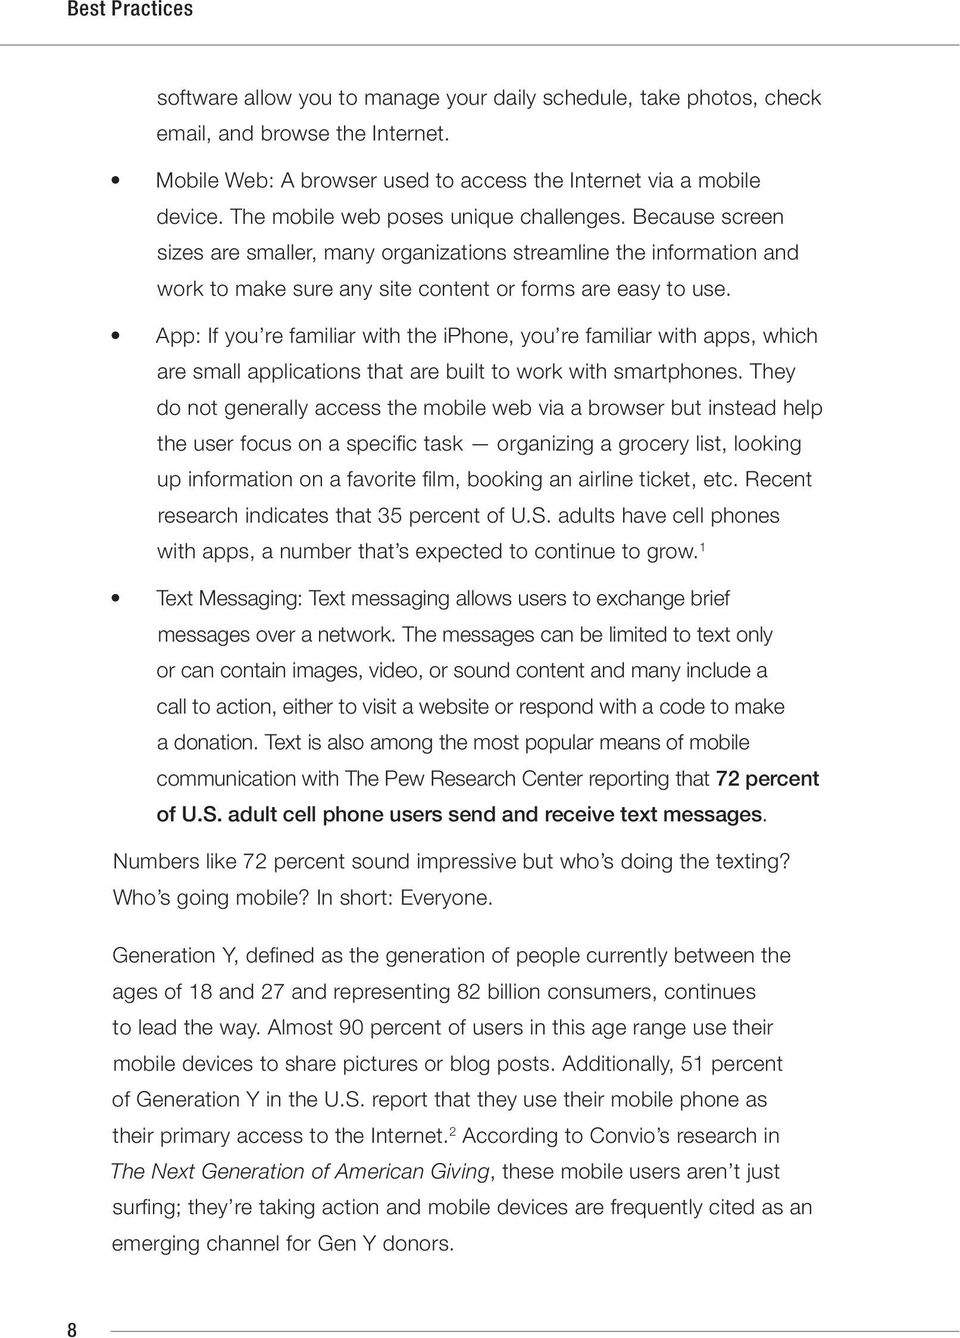 App: If you re familiar with the iphone, you re familiar with apps, which are small applications that are built to work with smartphones.